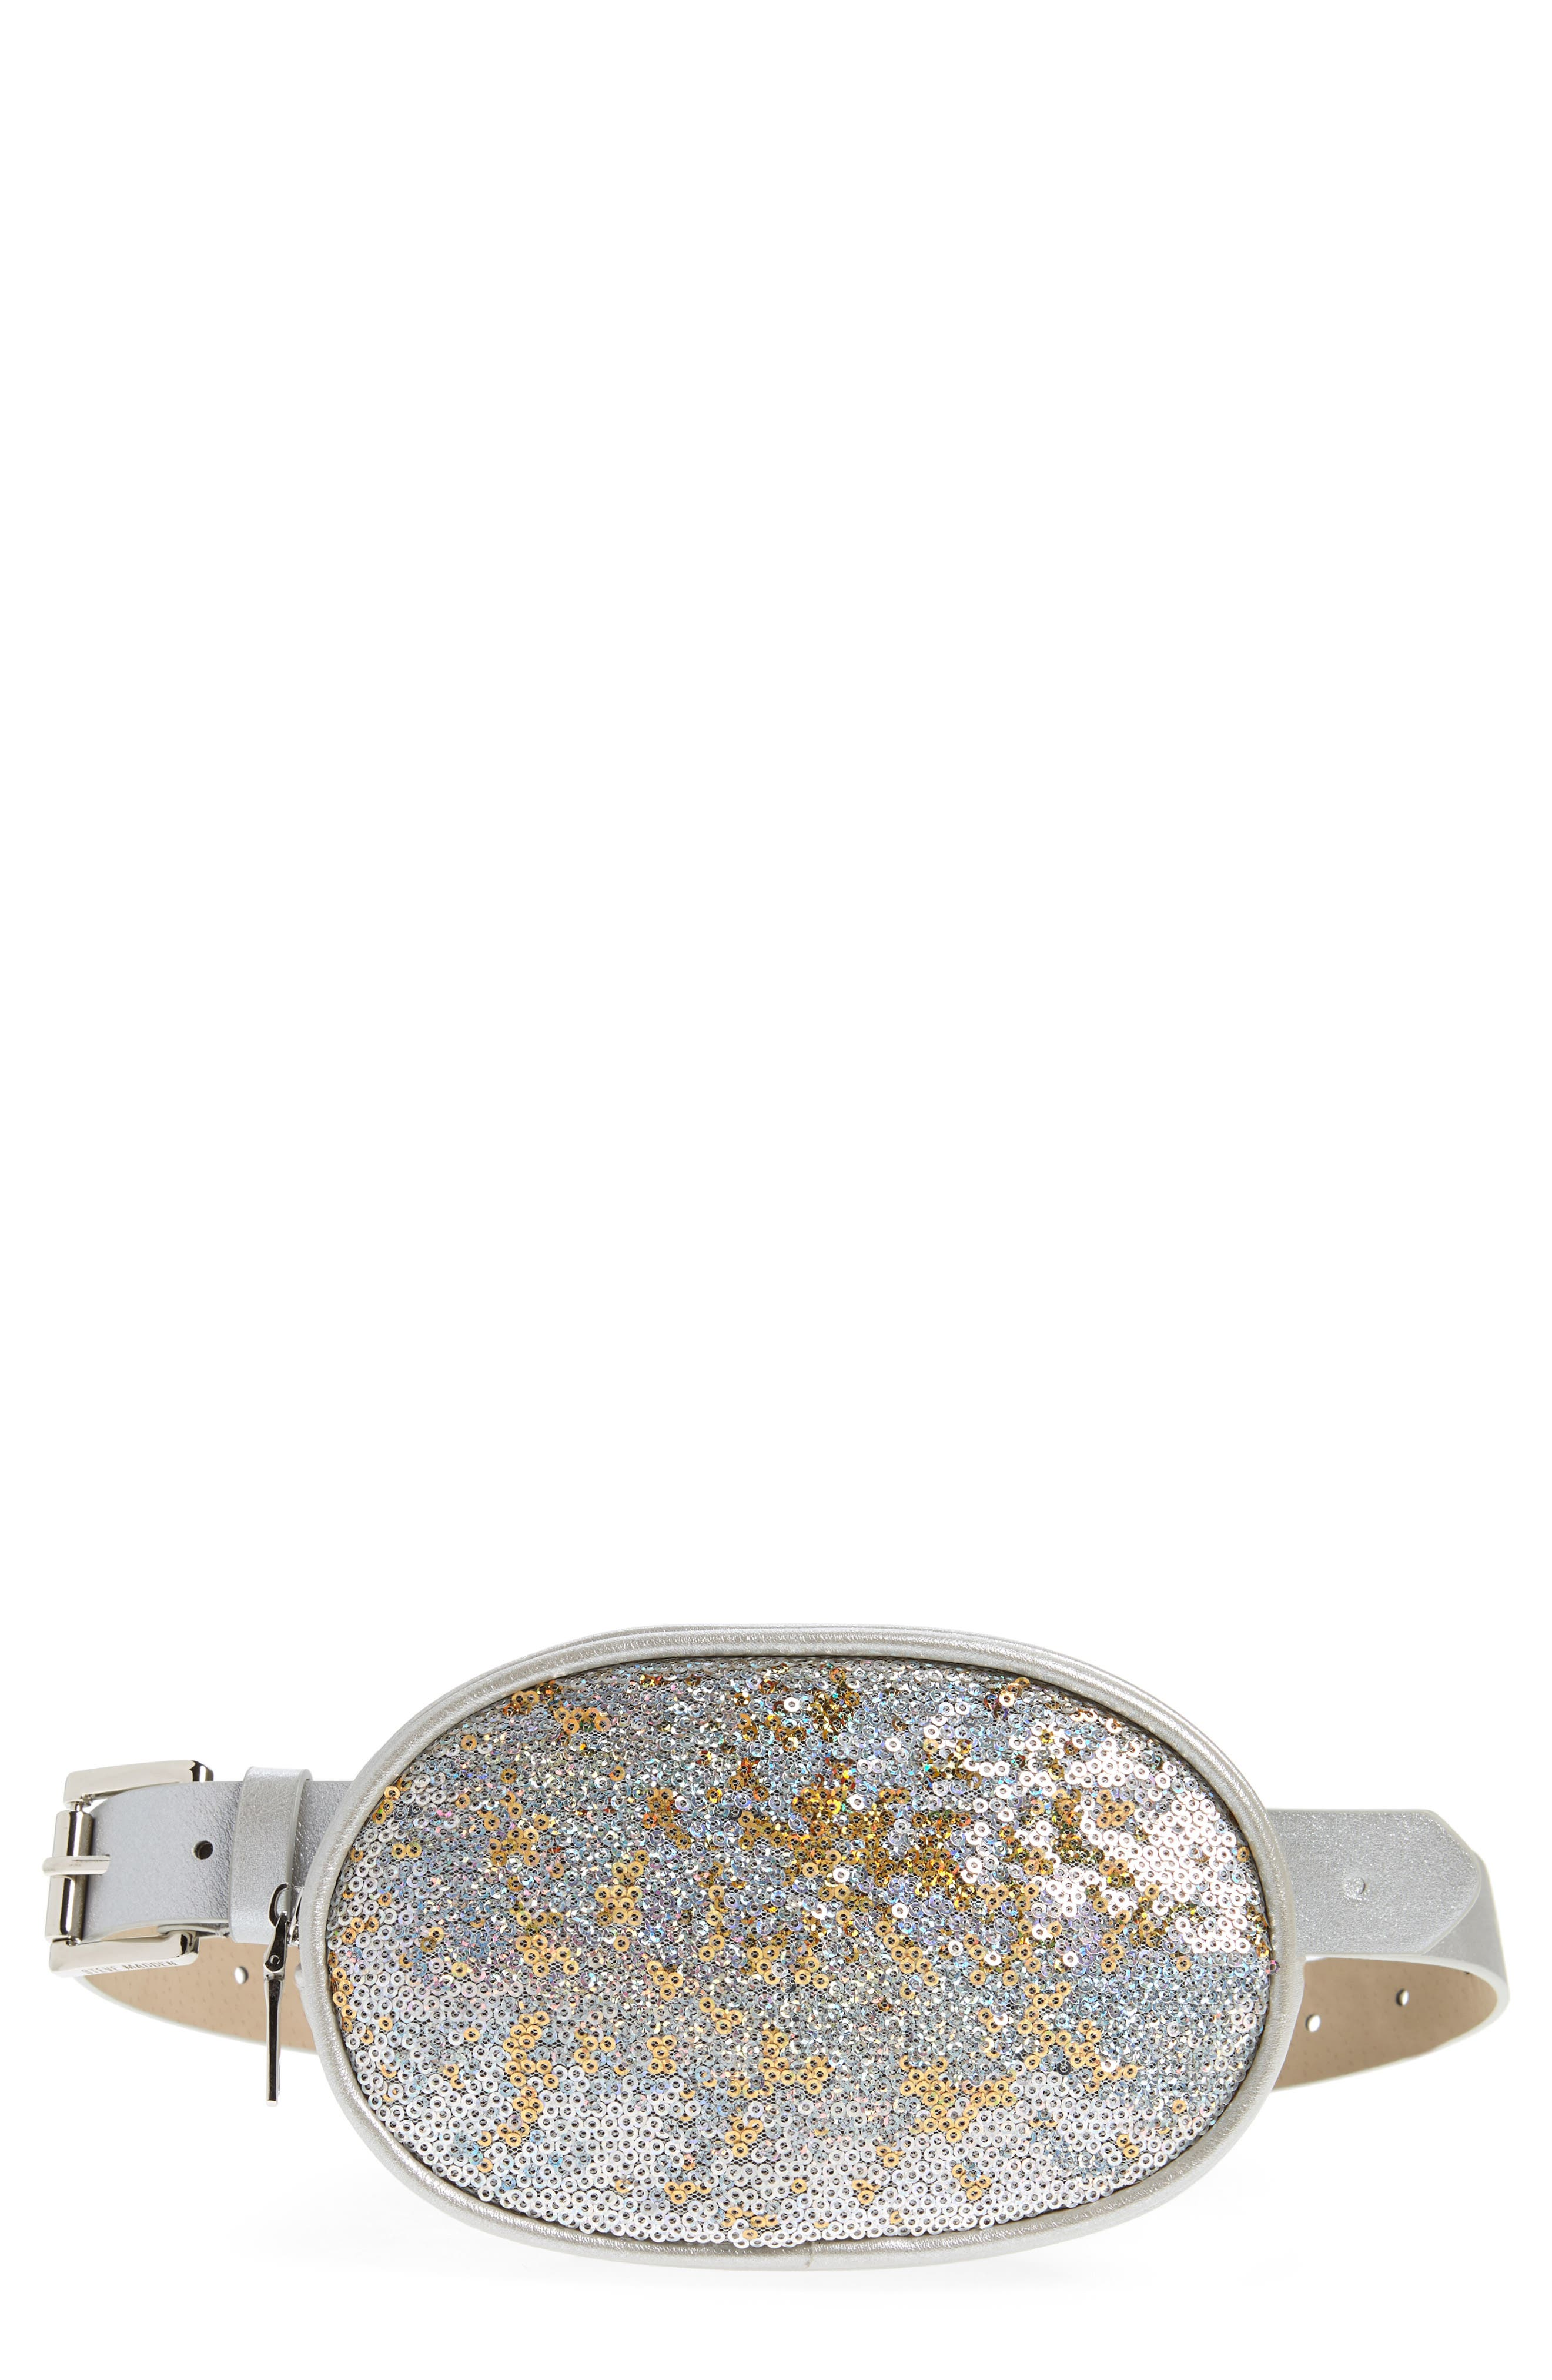 Sequin Faux Leather Belt Bag,                             Main thumbnail 1, color,                             SILVER